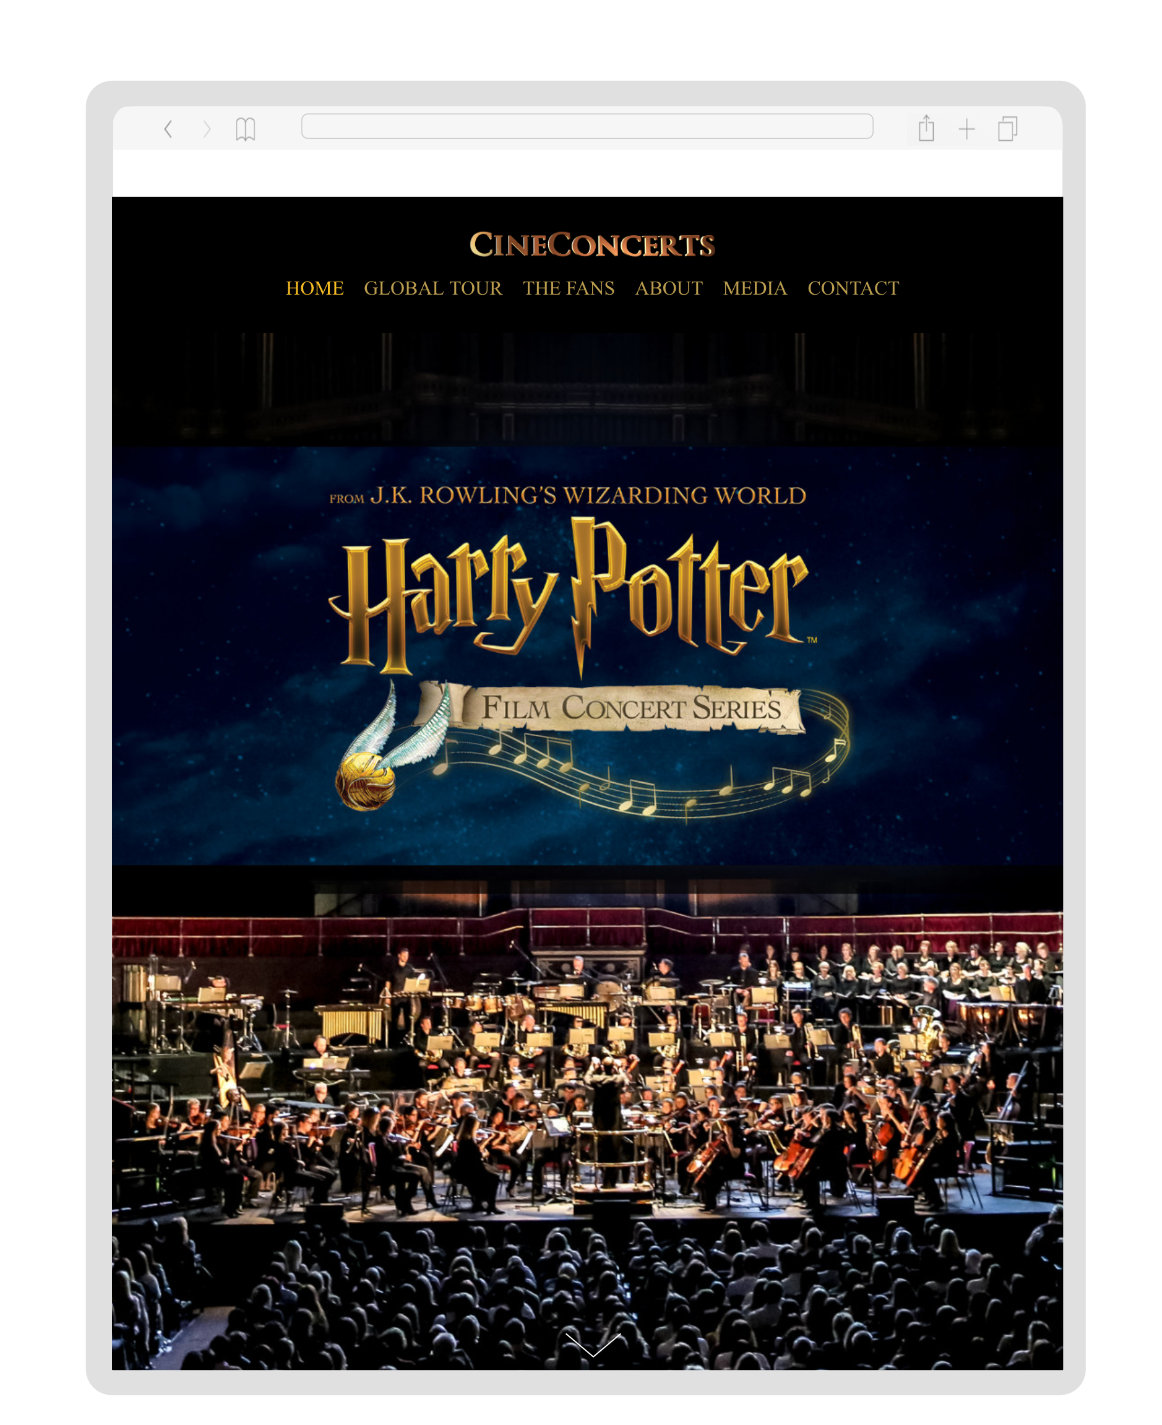 Harry Potter in Concert - Website Design & BuildMapping App for the global tour